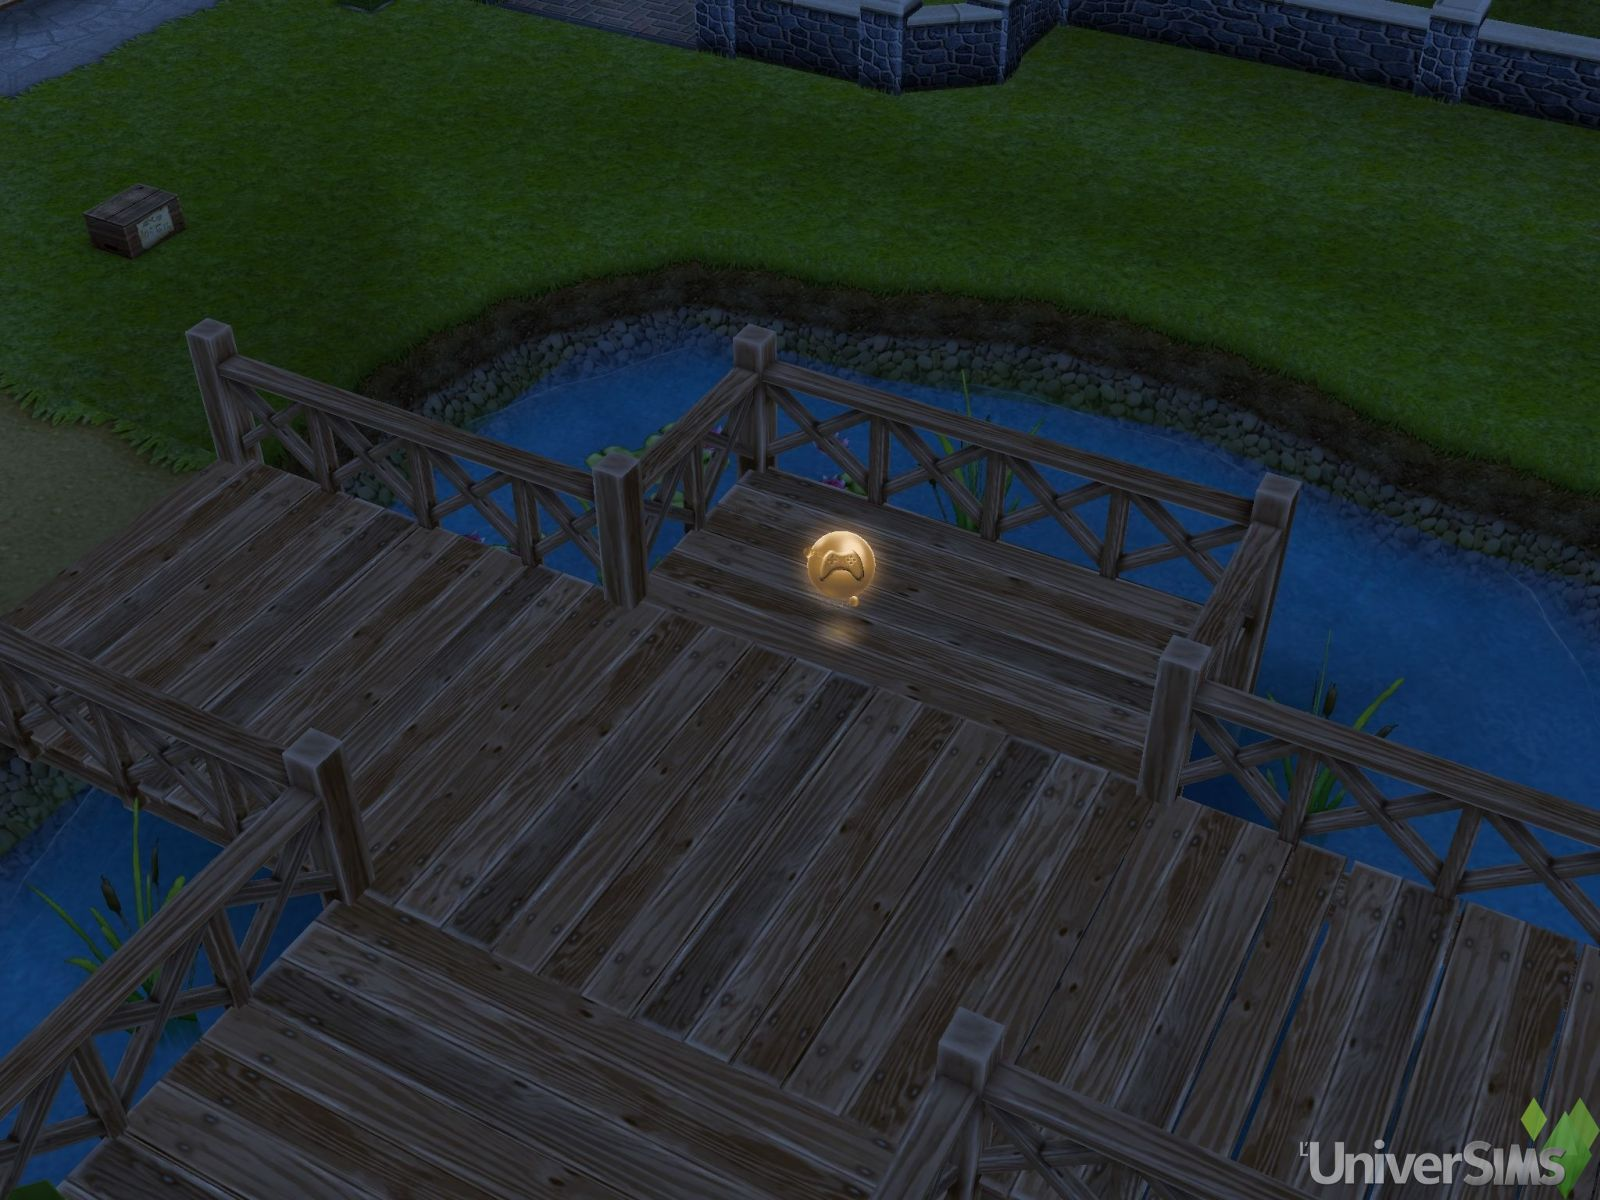 les-sims-gratuit-freeplay-maj-reves-a-long-terme